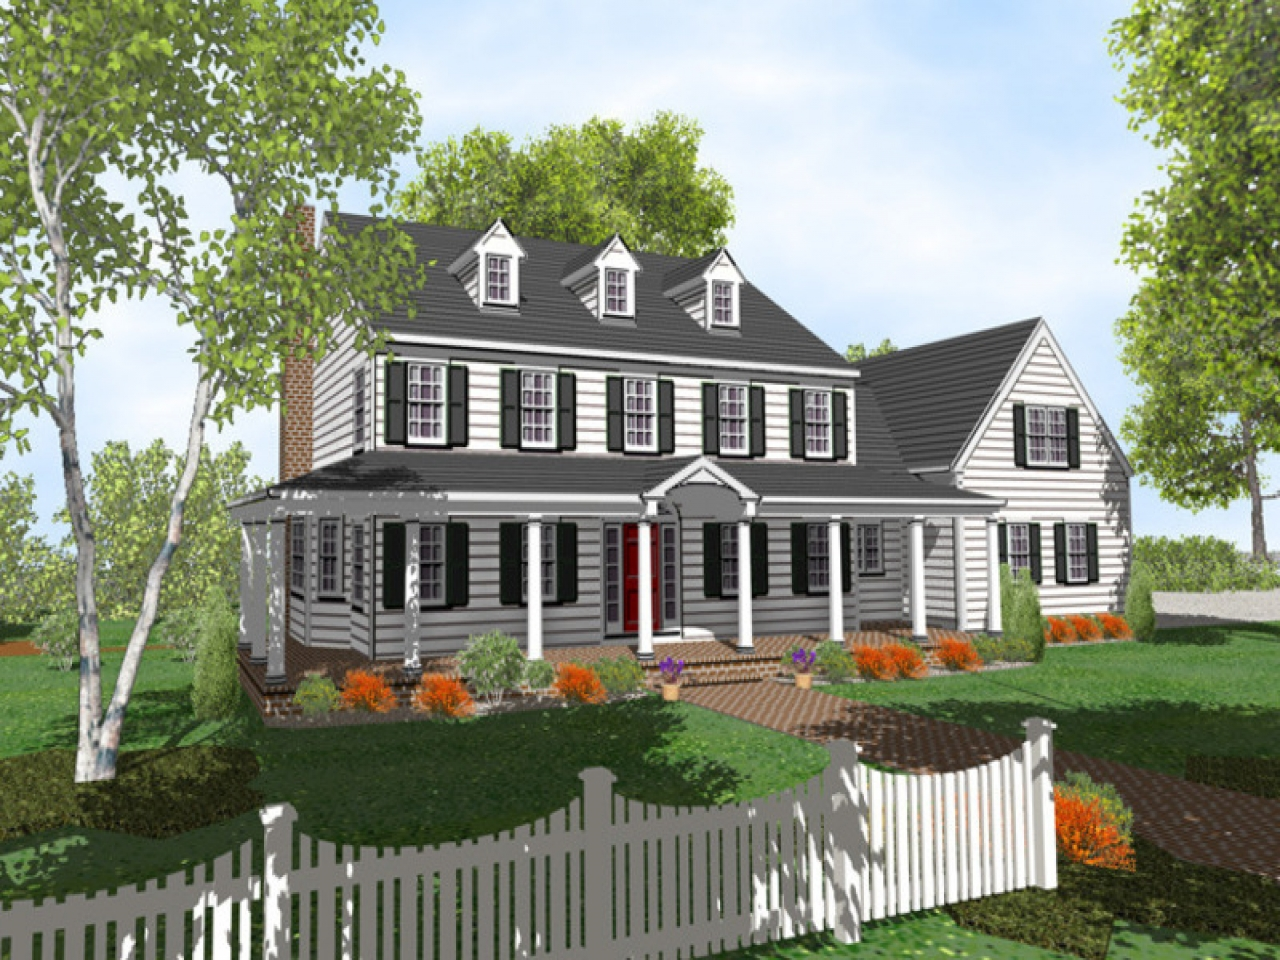 2 Story Colonial Style House Plans Two Story Colonial